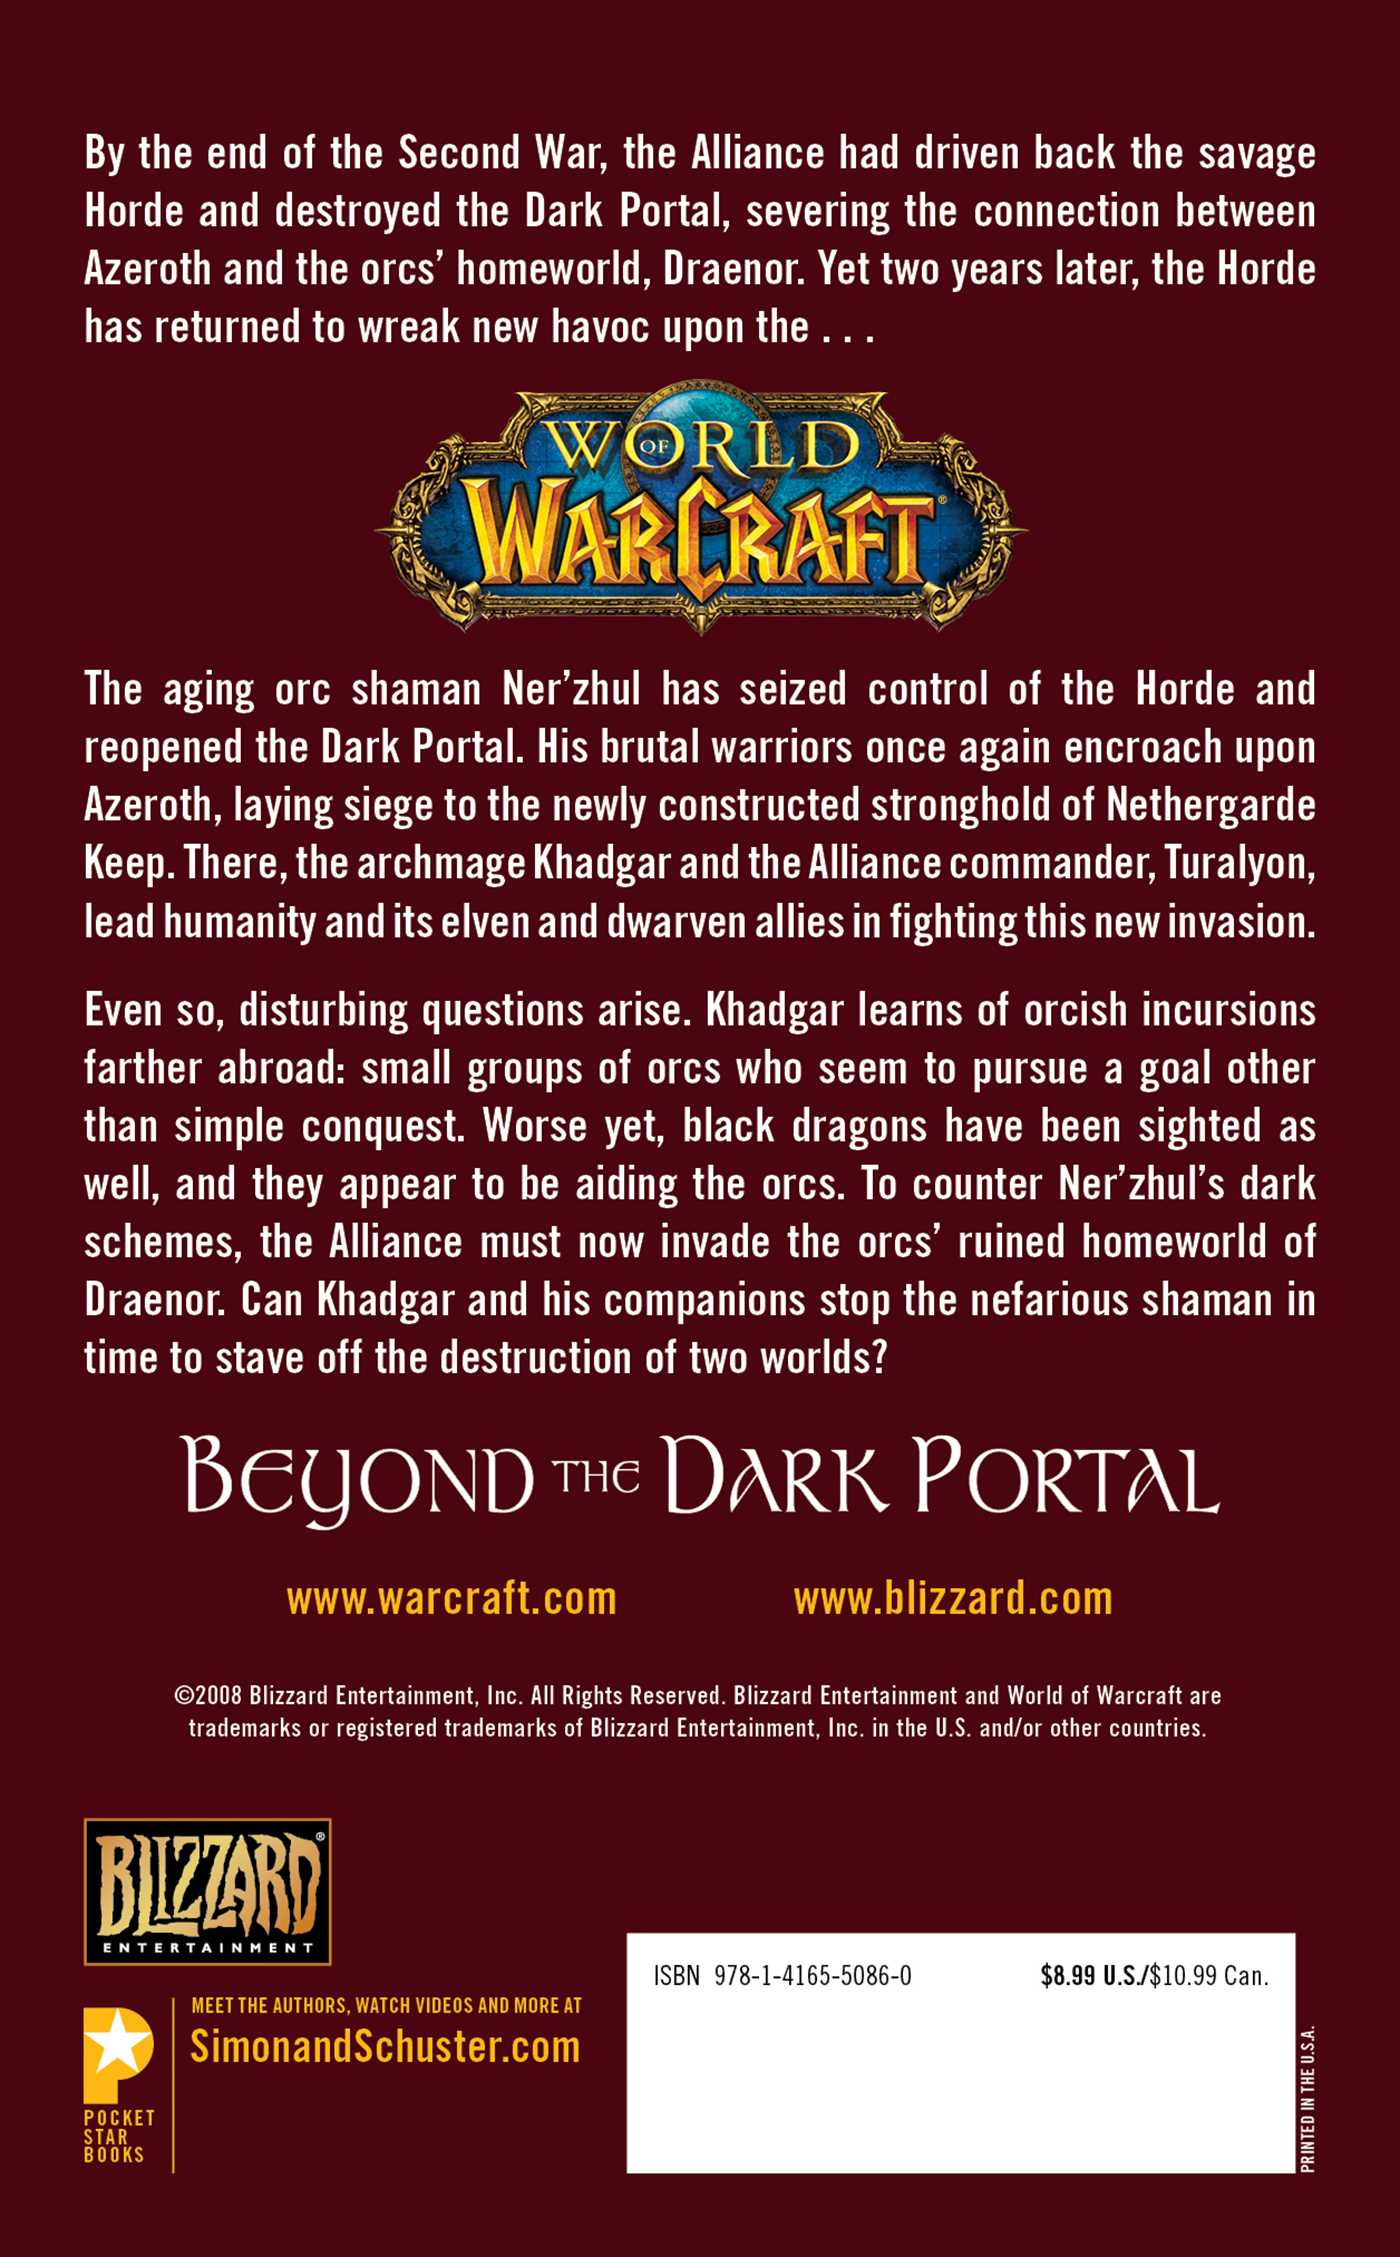 World of warcraft beyond the dark portal 9781416550860 hr back